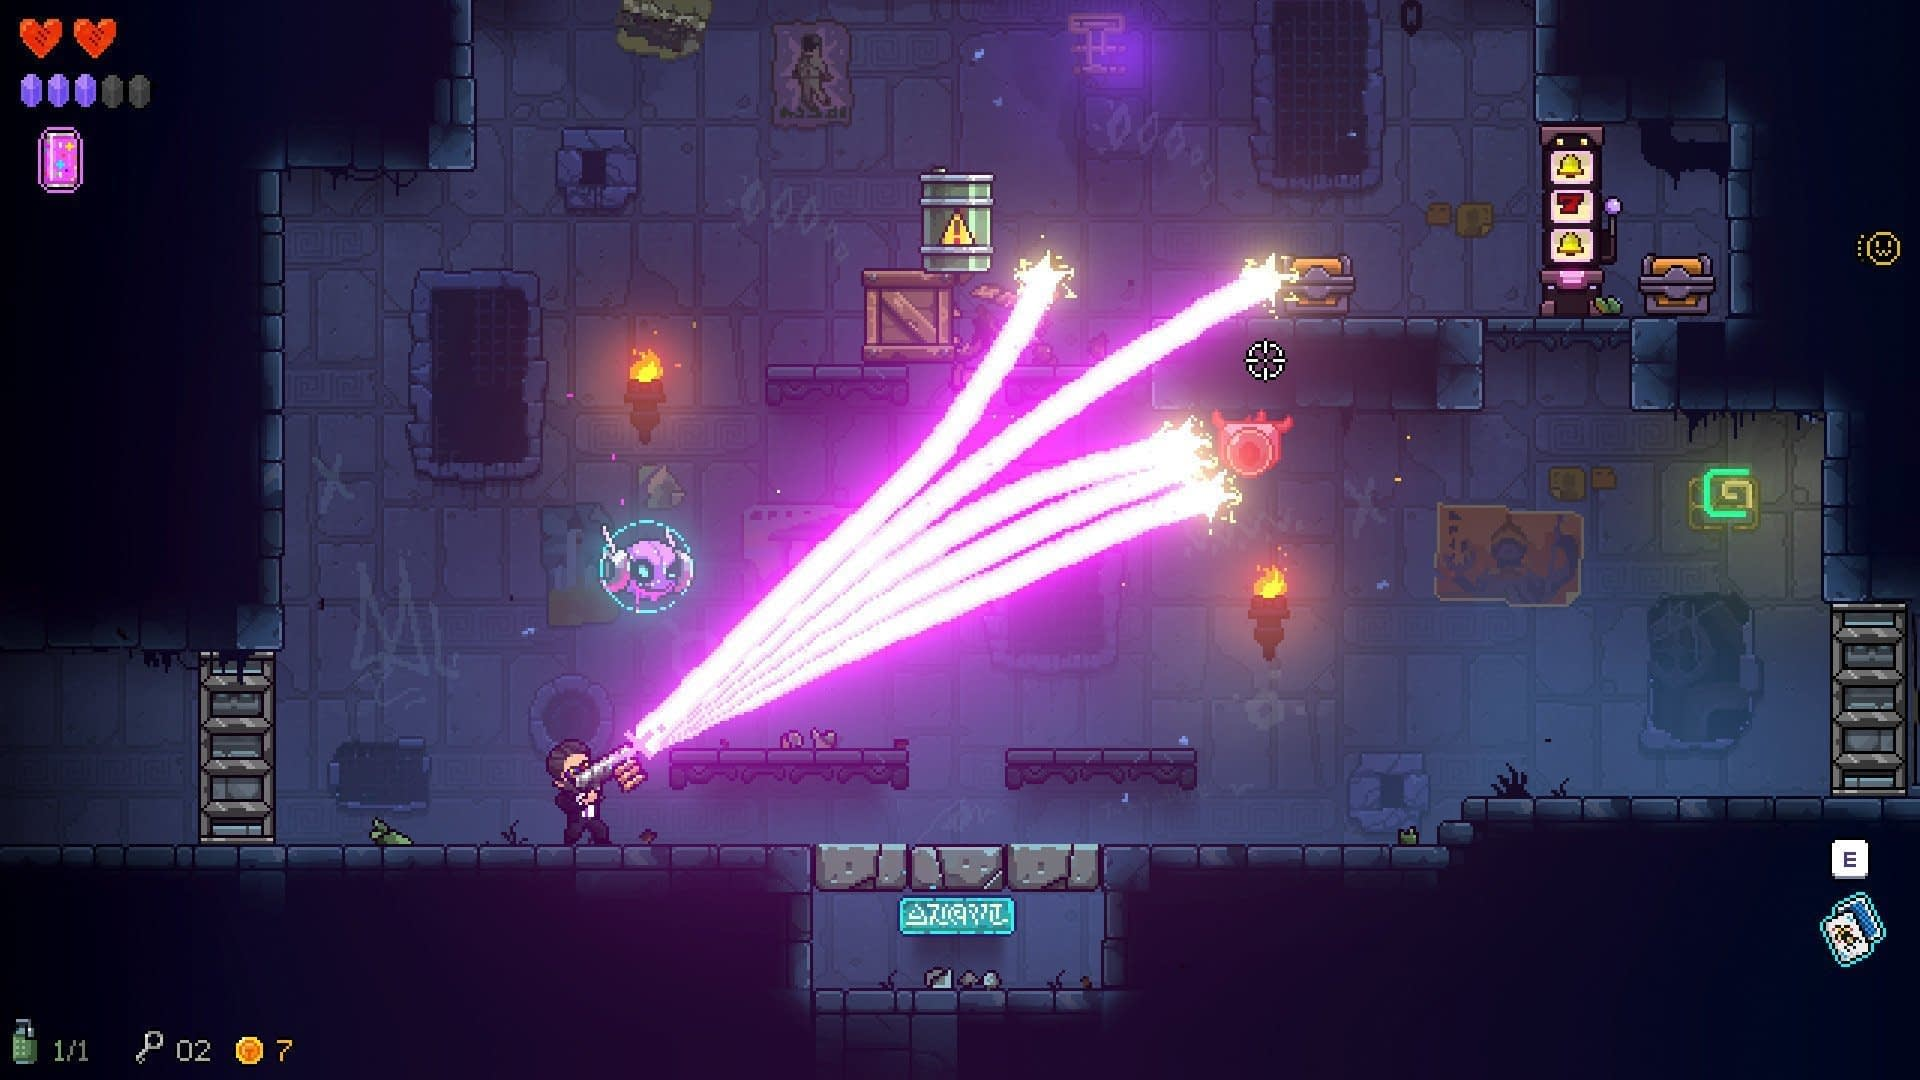 New Games on Steam: Neon Abyss